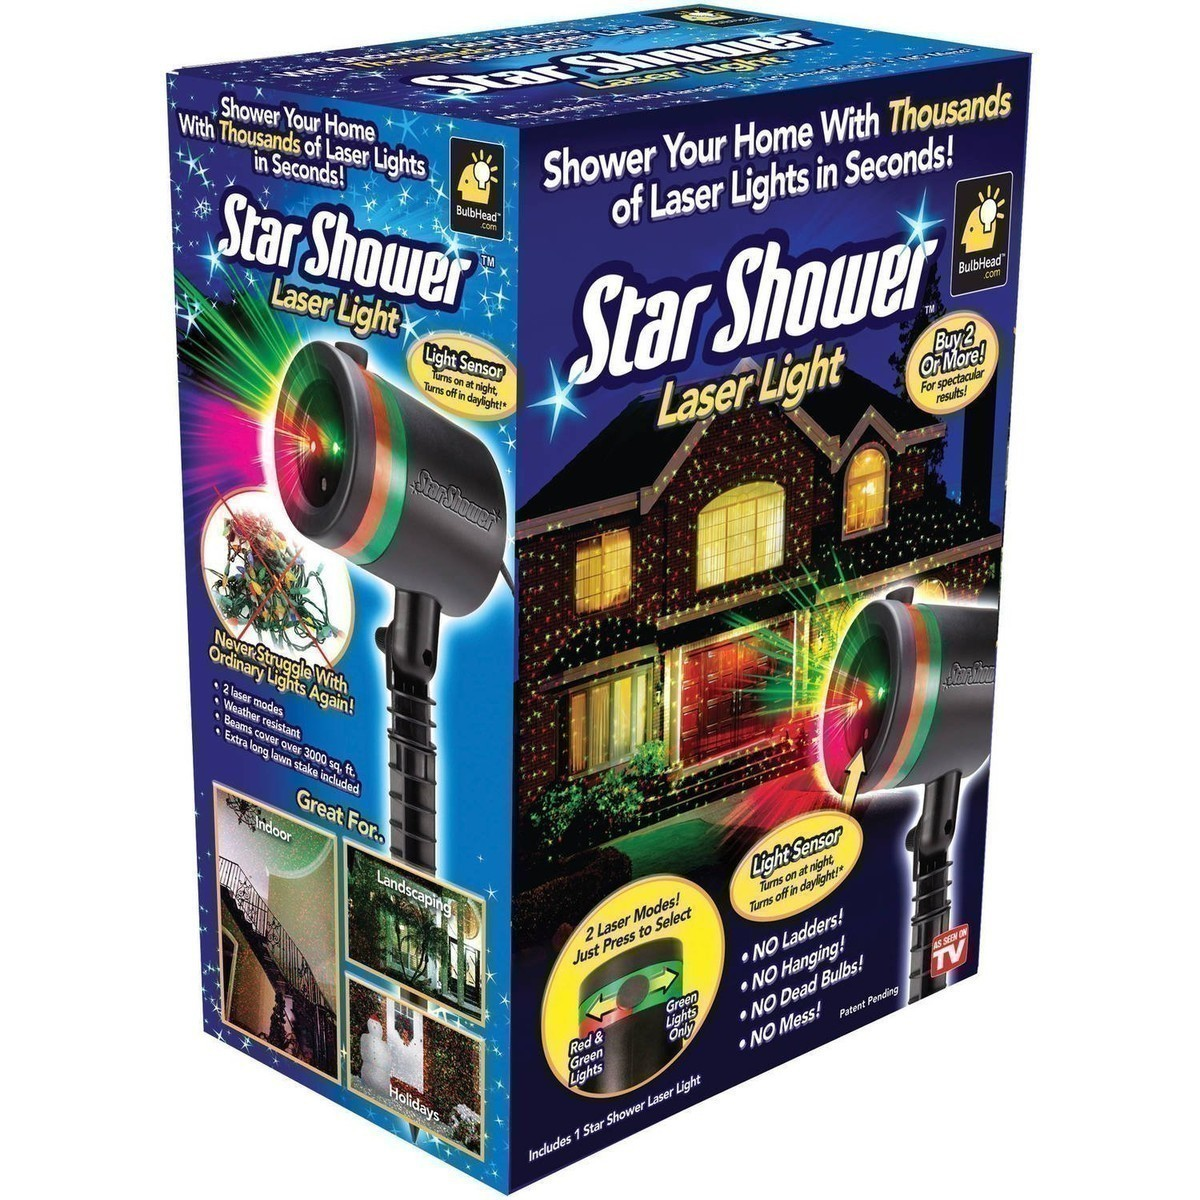 Amazon: Star Shower Star Shower Outdoor Laser Christmas